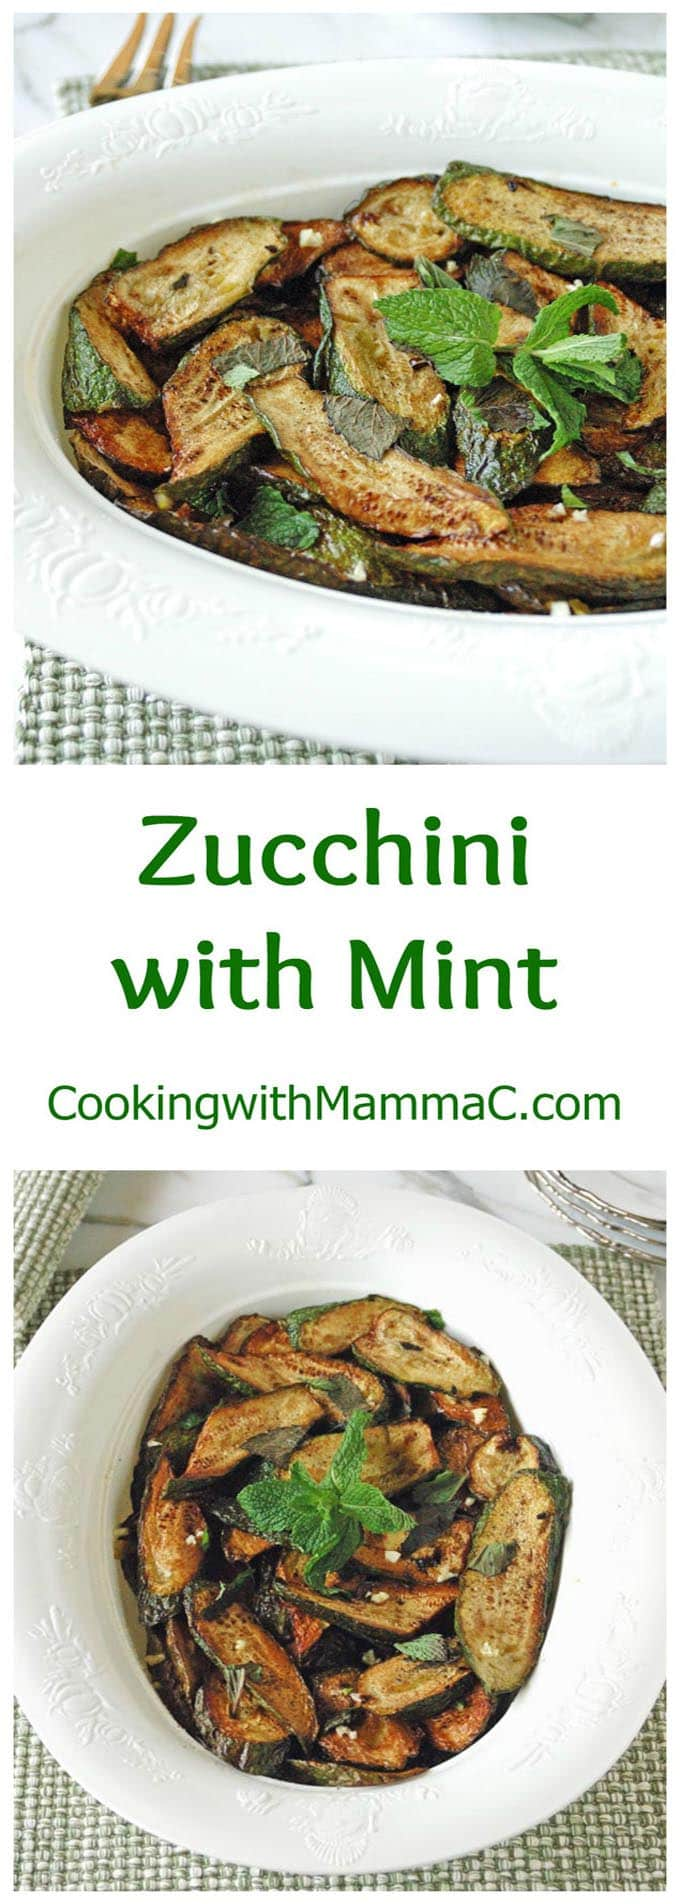 Two photos of Zucchini with mint on plates, separated by green type and the Cooking with Mamma C URL